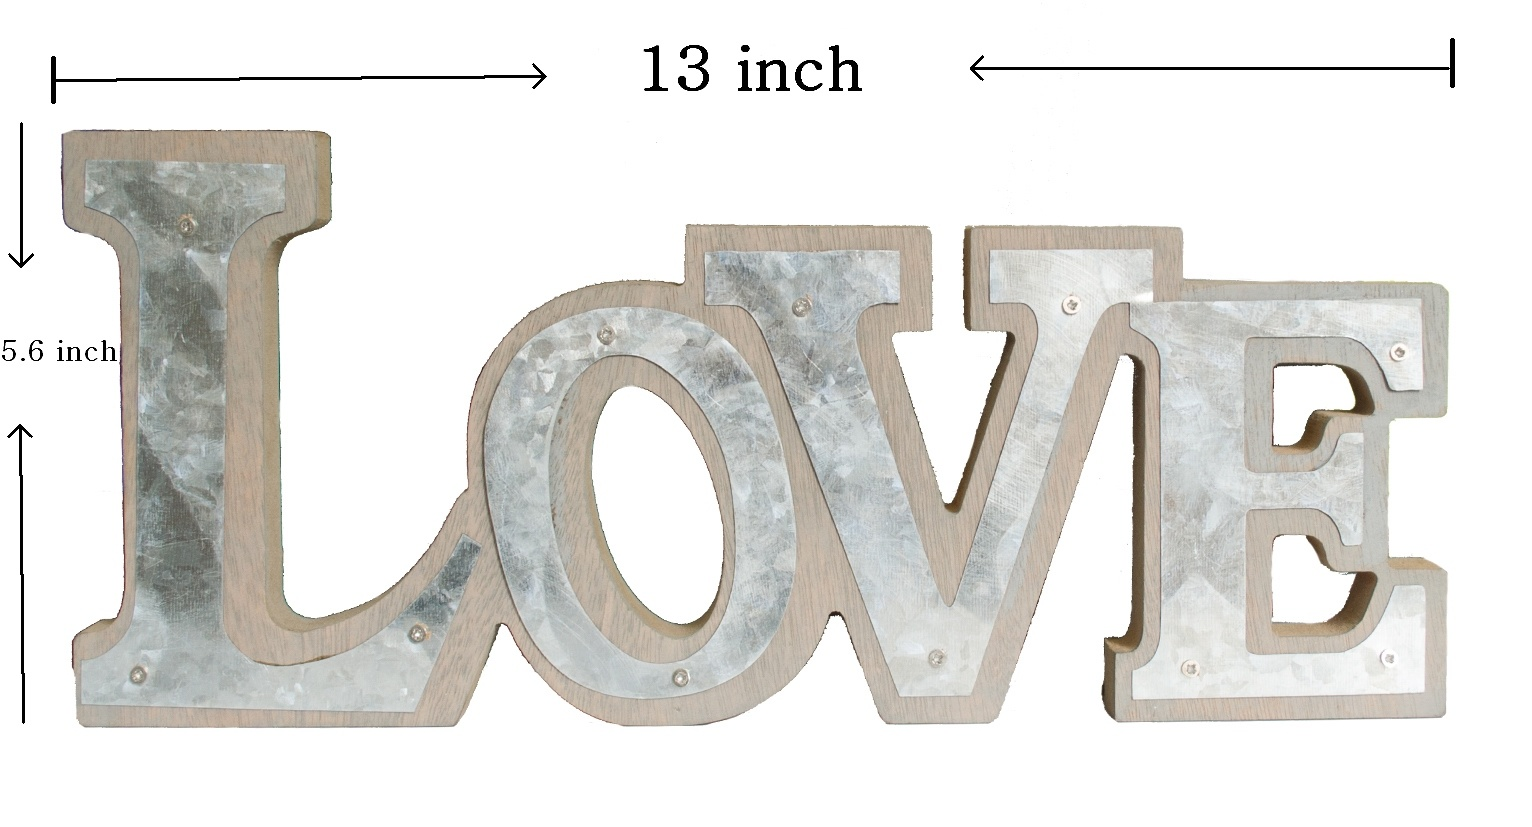 Galvanized Tin Letters China Galvanized Metal Tin Letter Sign Decor  China Letter Wall